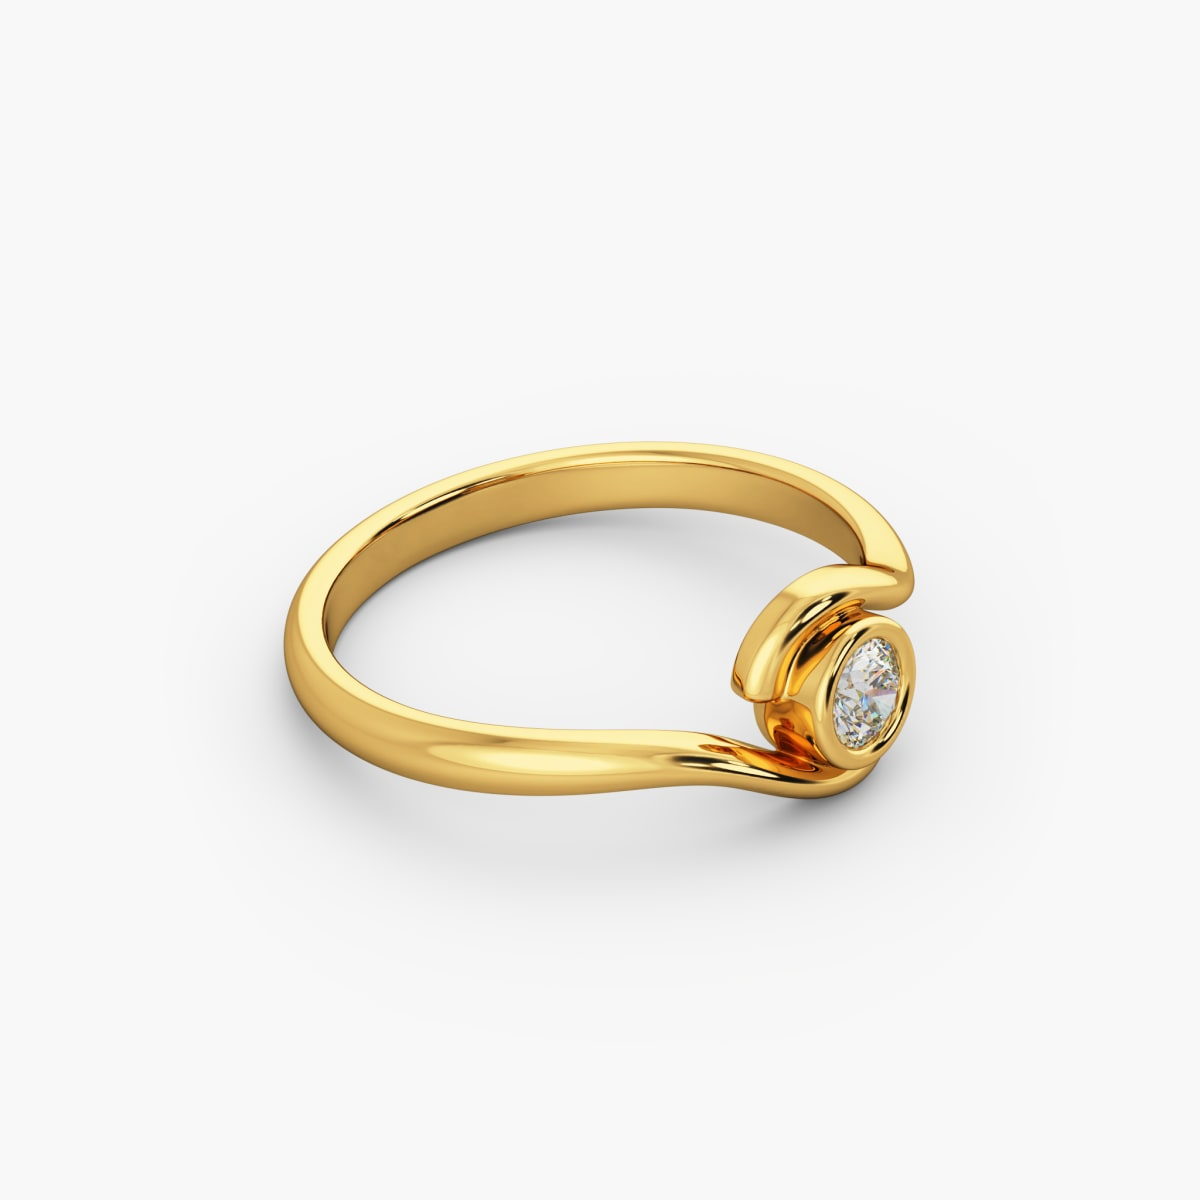 The Ganakshi Ring For Her